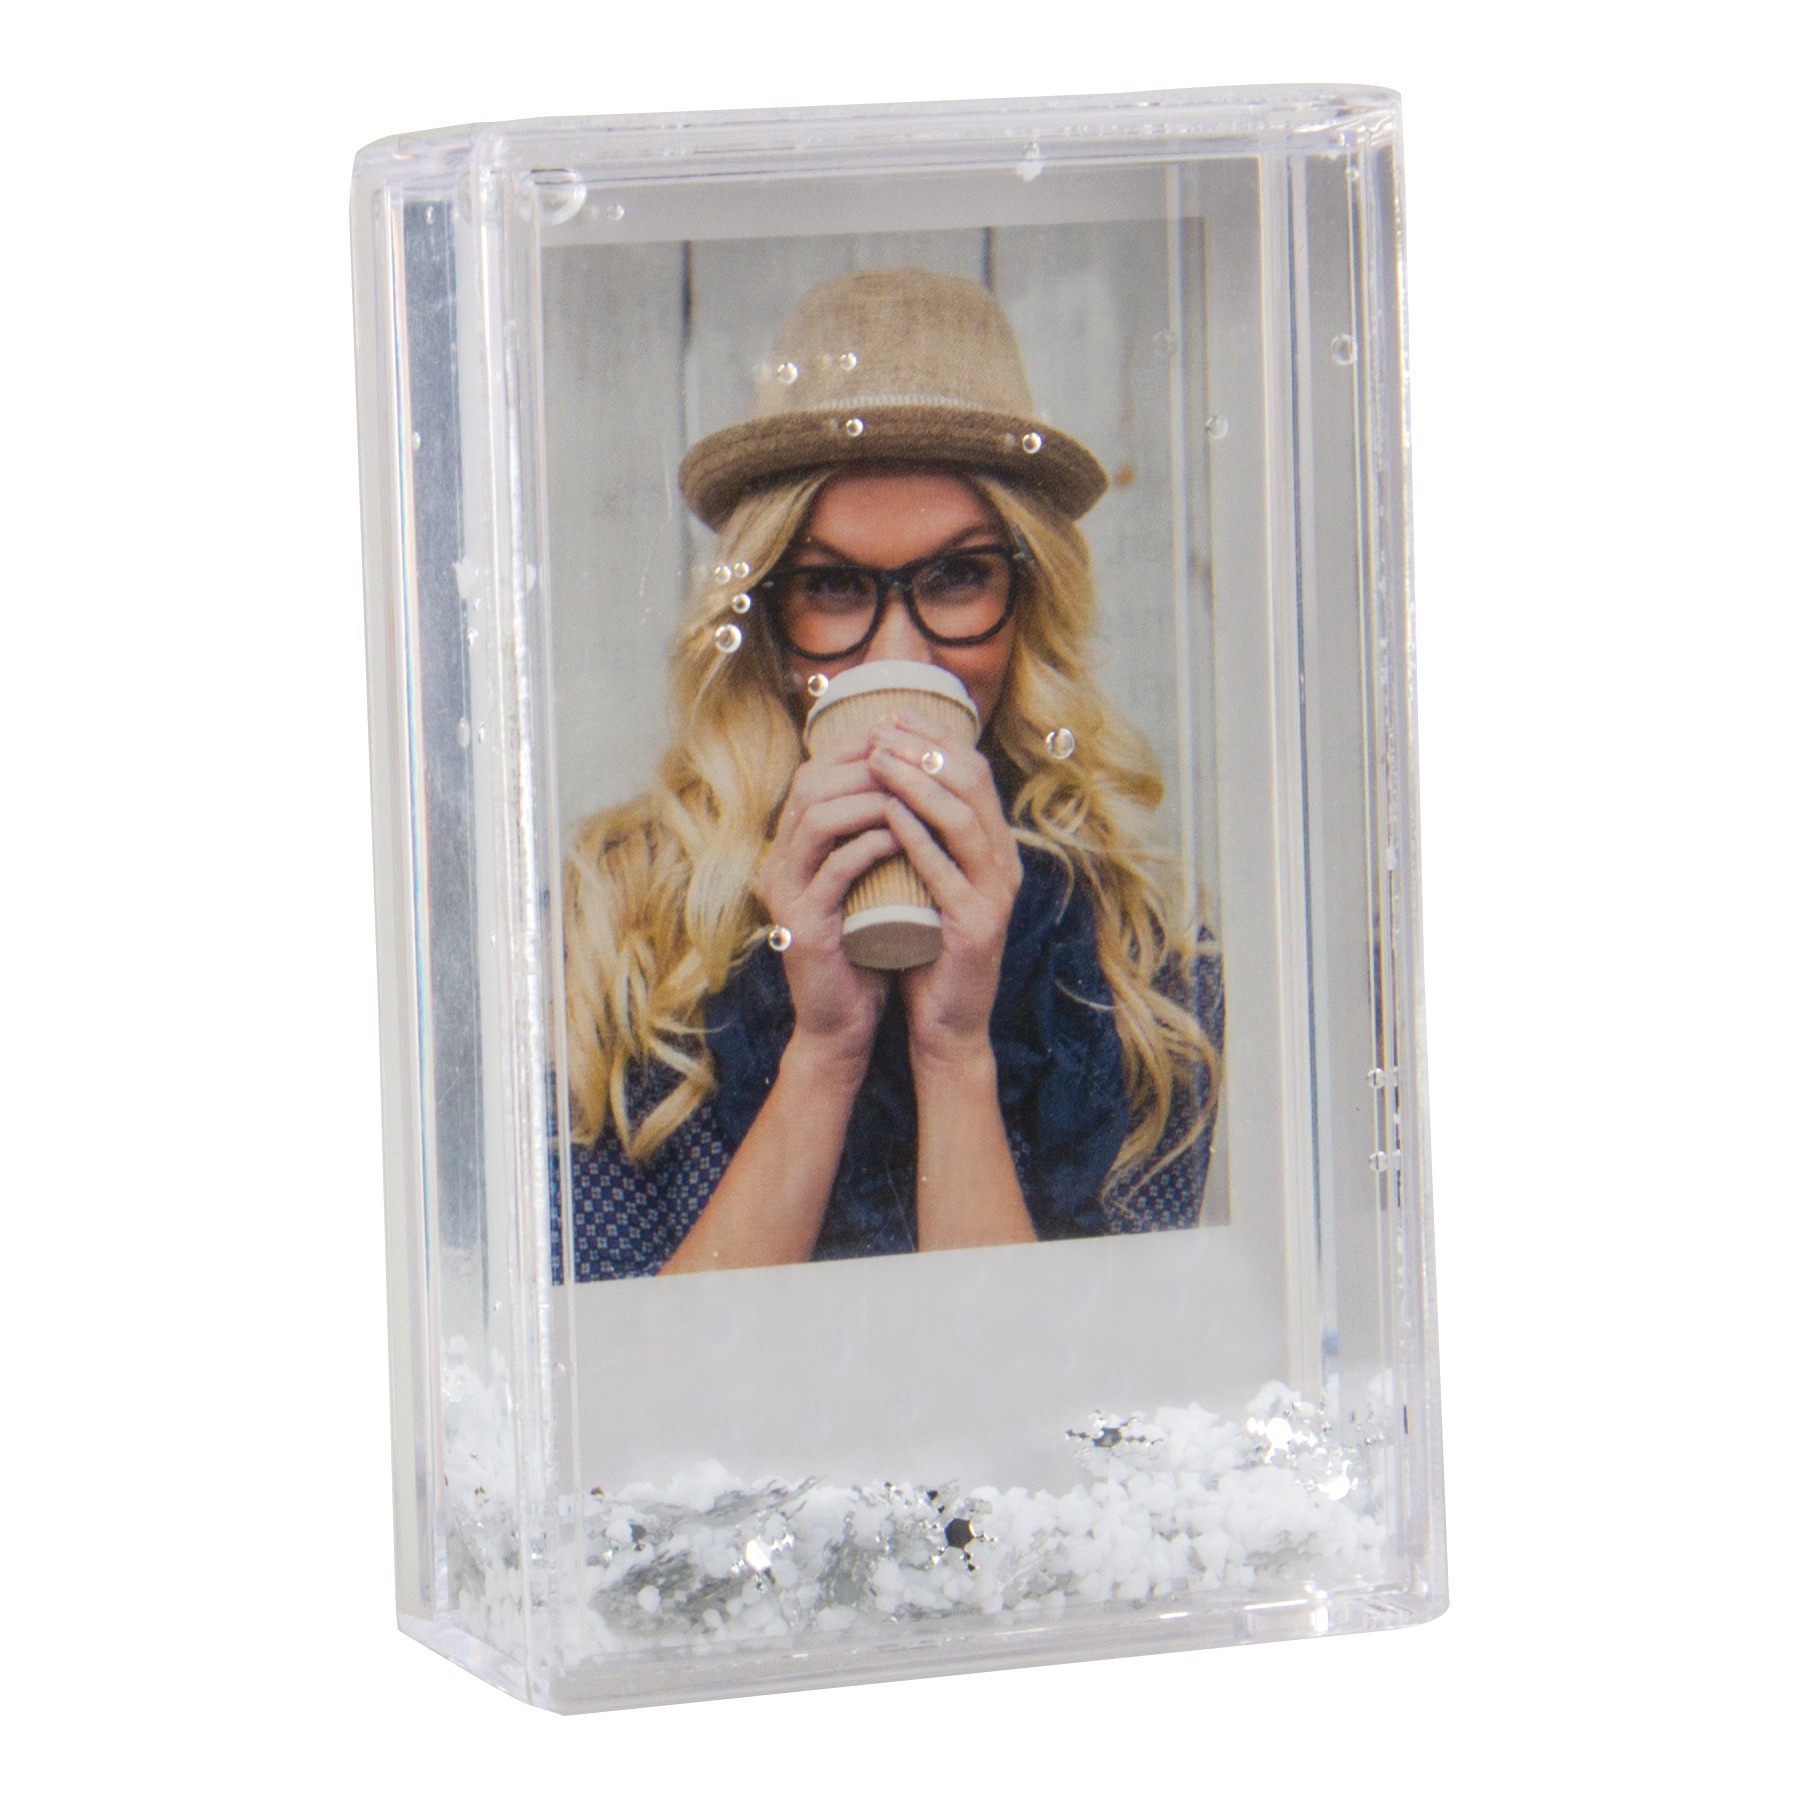 wholesale instax mini snow frame - Wholesale Frames